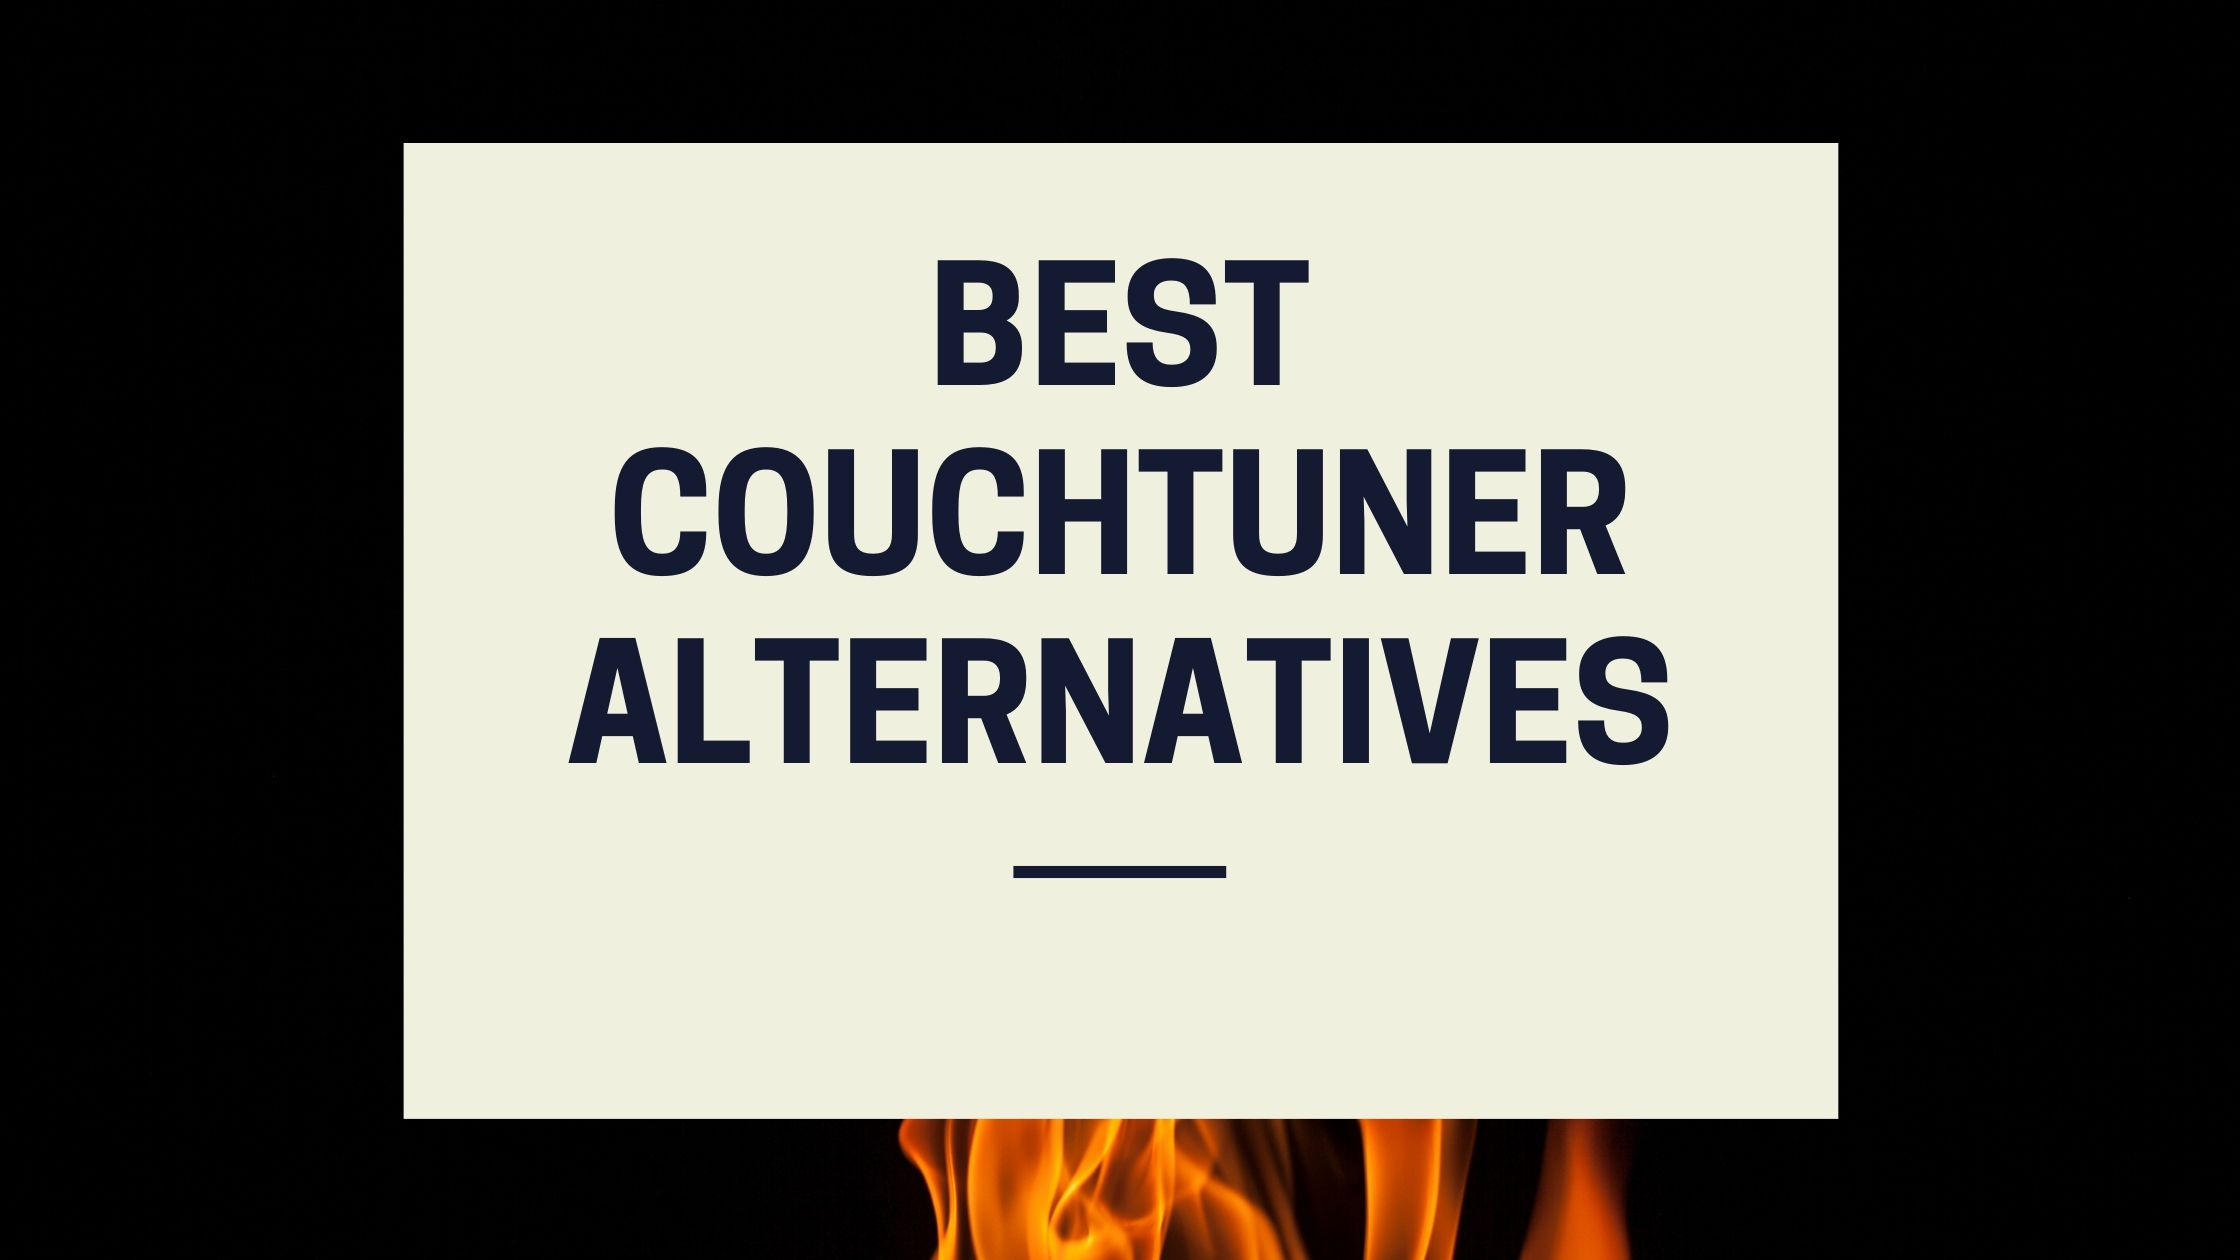 Best Couchtuner alternatives